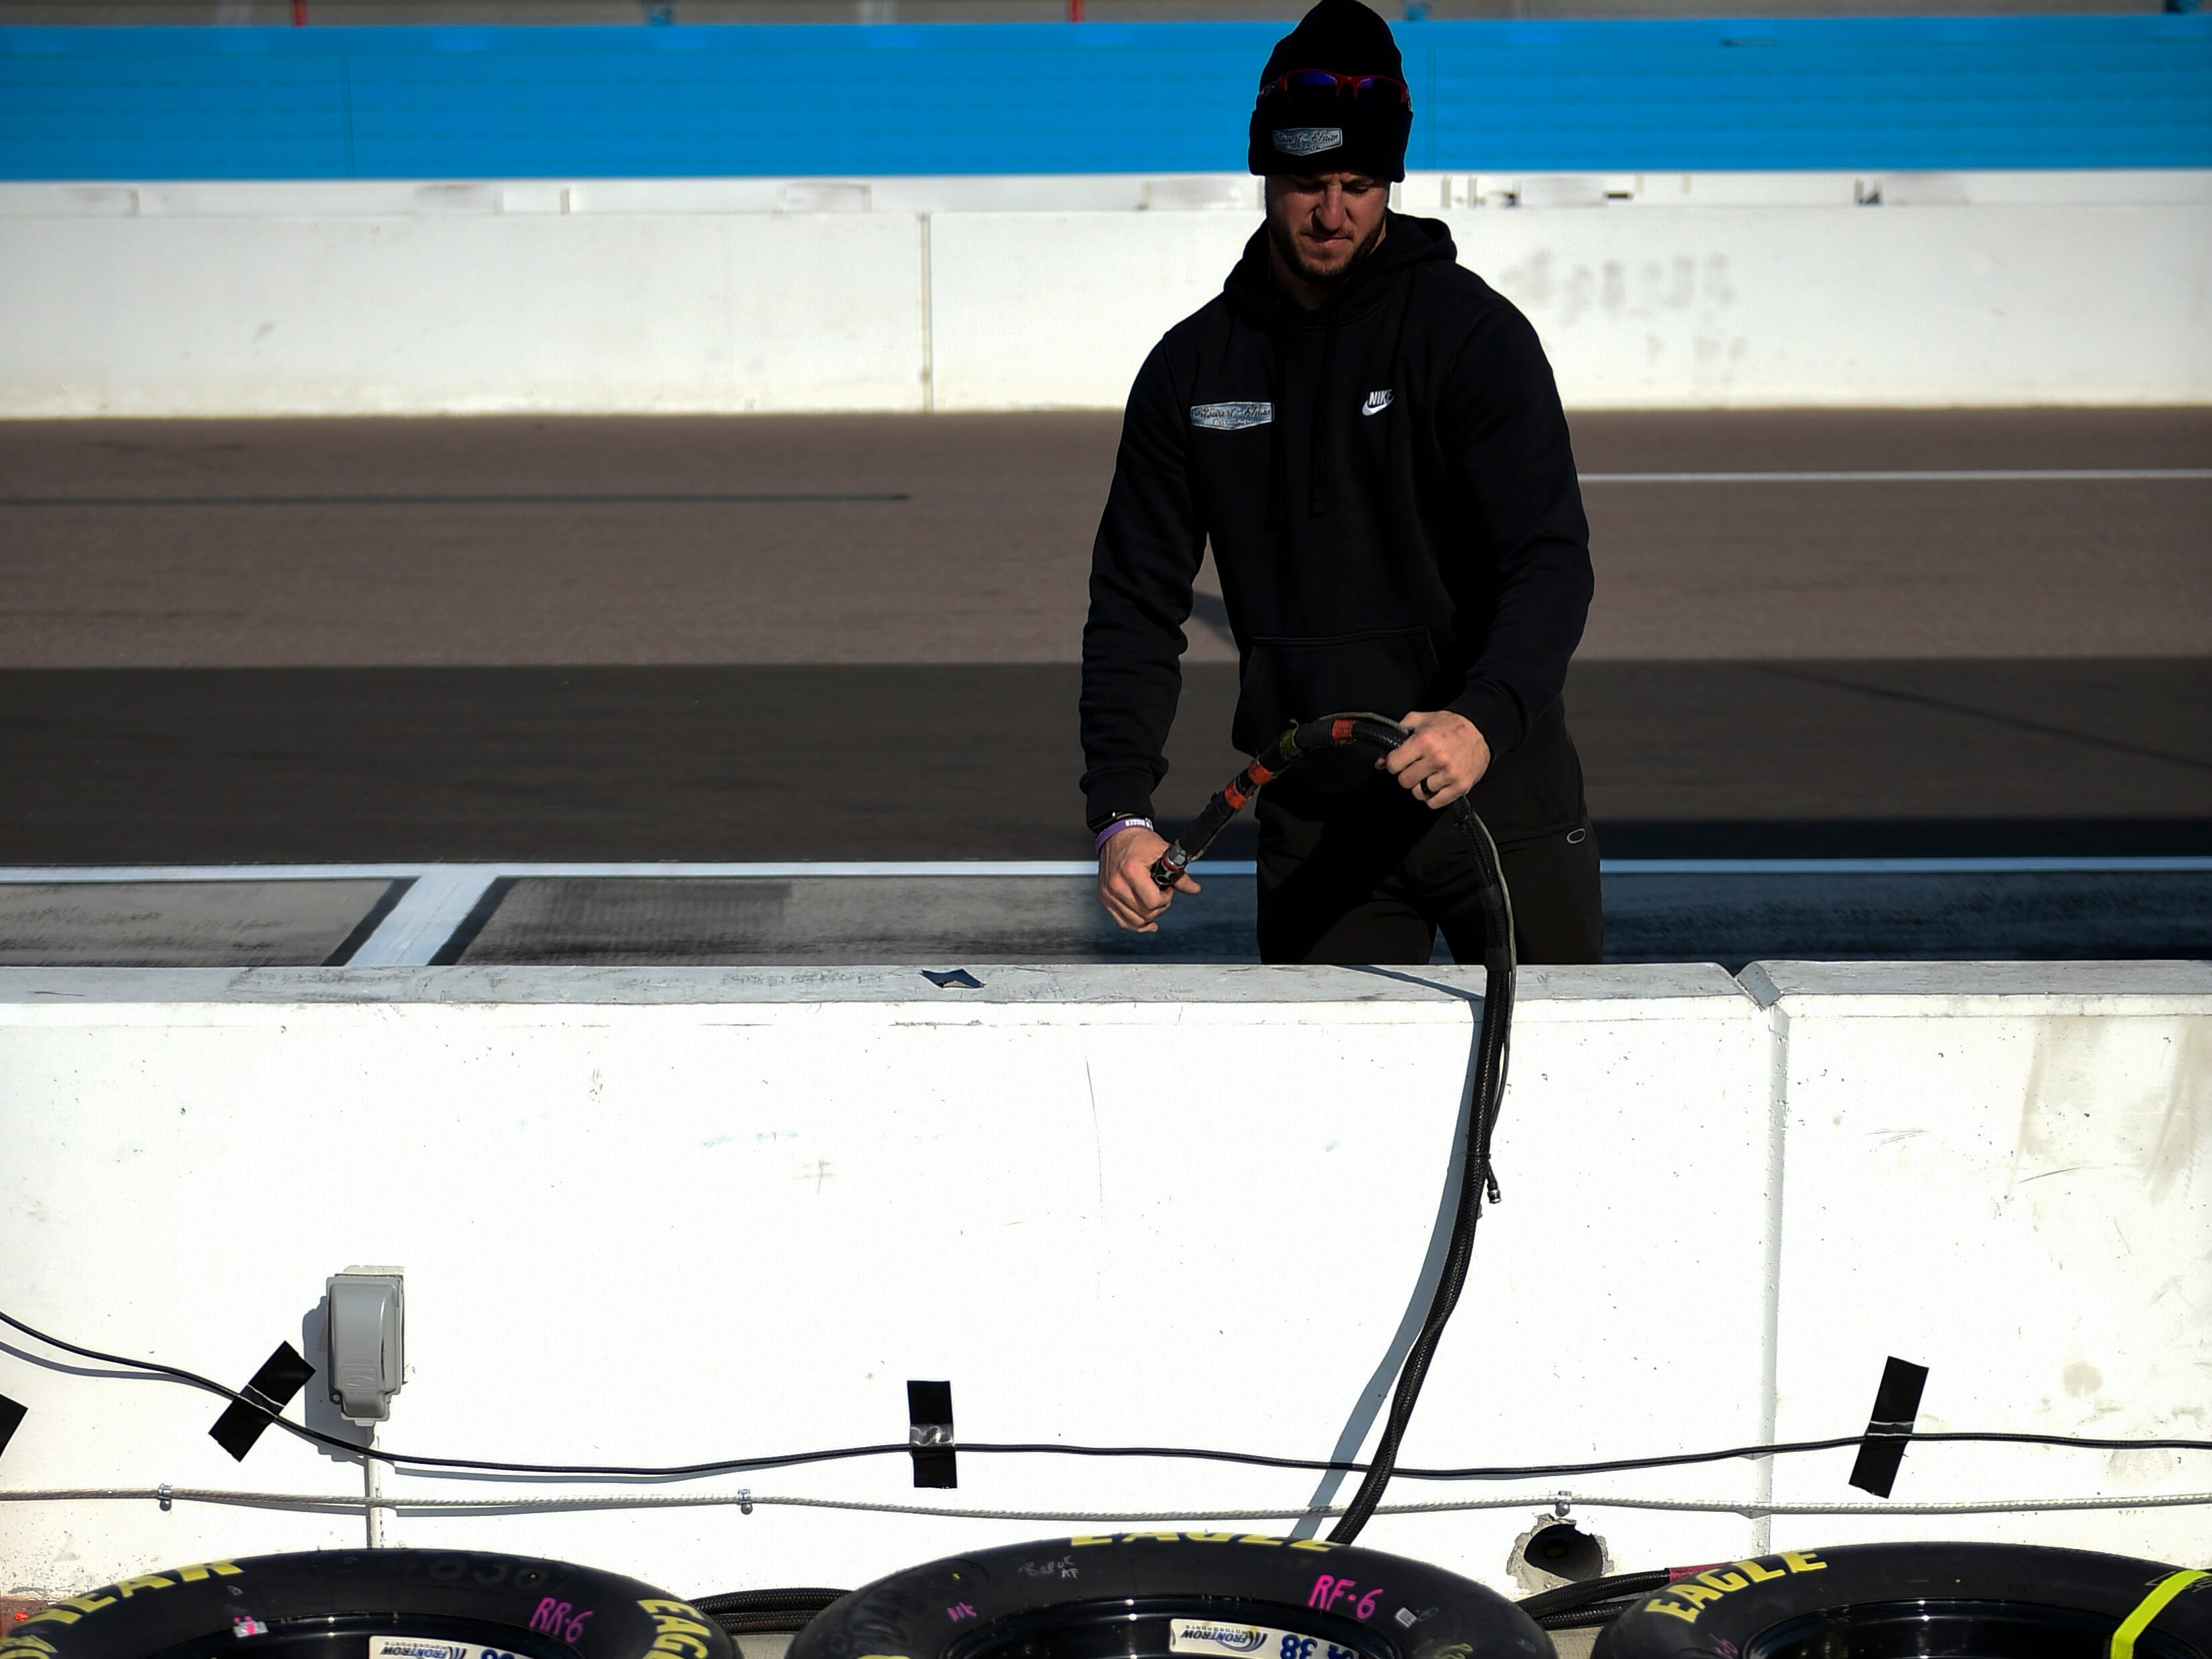 Nov 11, 2018; Avondale, AZ, USA; A crew member sets up the pit for Monster Energy NASCAR Cup Series driver William Byron (24) prior to the Can-Am 500 at ISM Raceway. Mandatory Credit: Kelvin Kuo-USA TODAY Sports